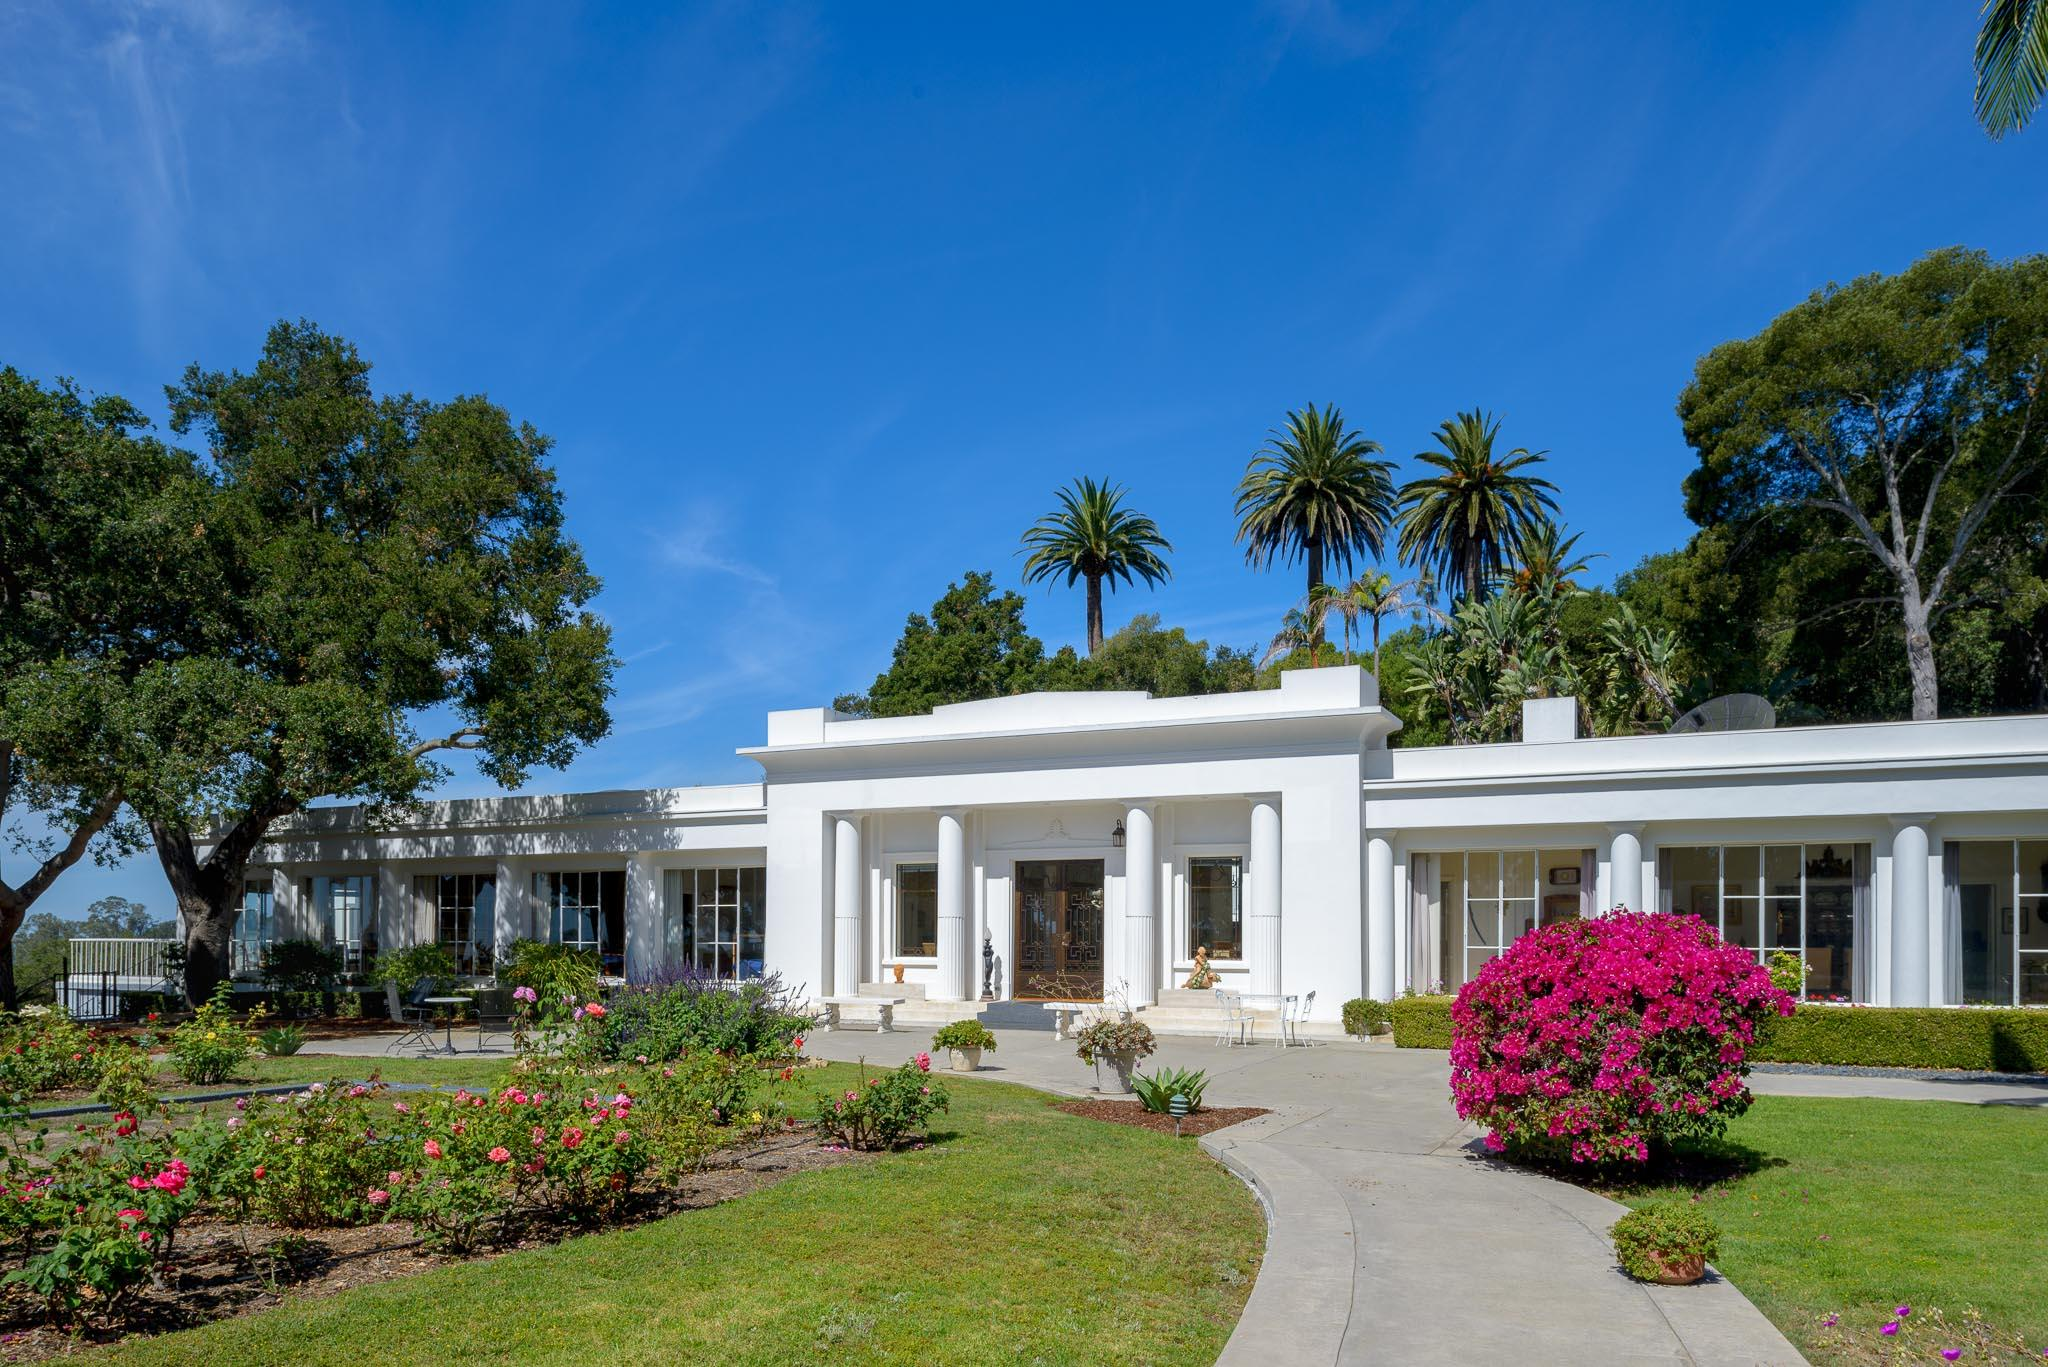 866  Knapp Dr, Santa Barbara, California